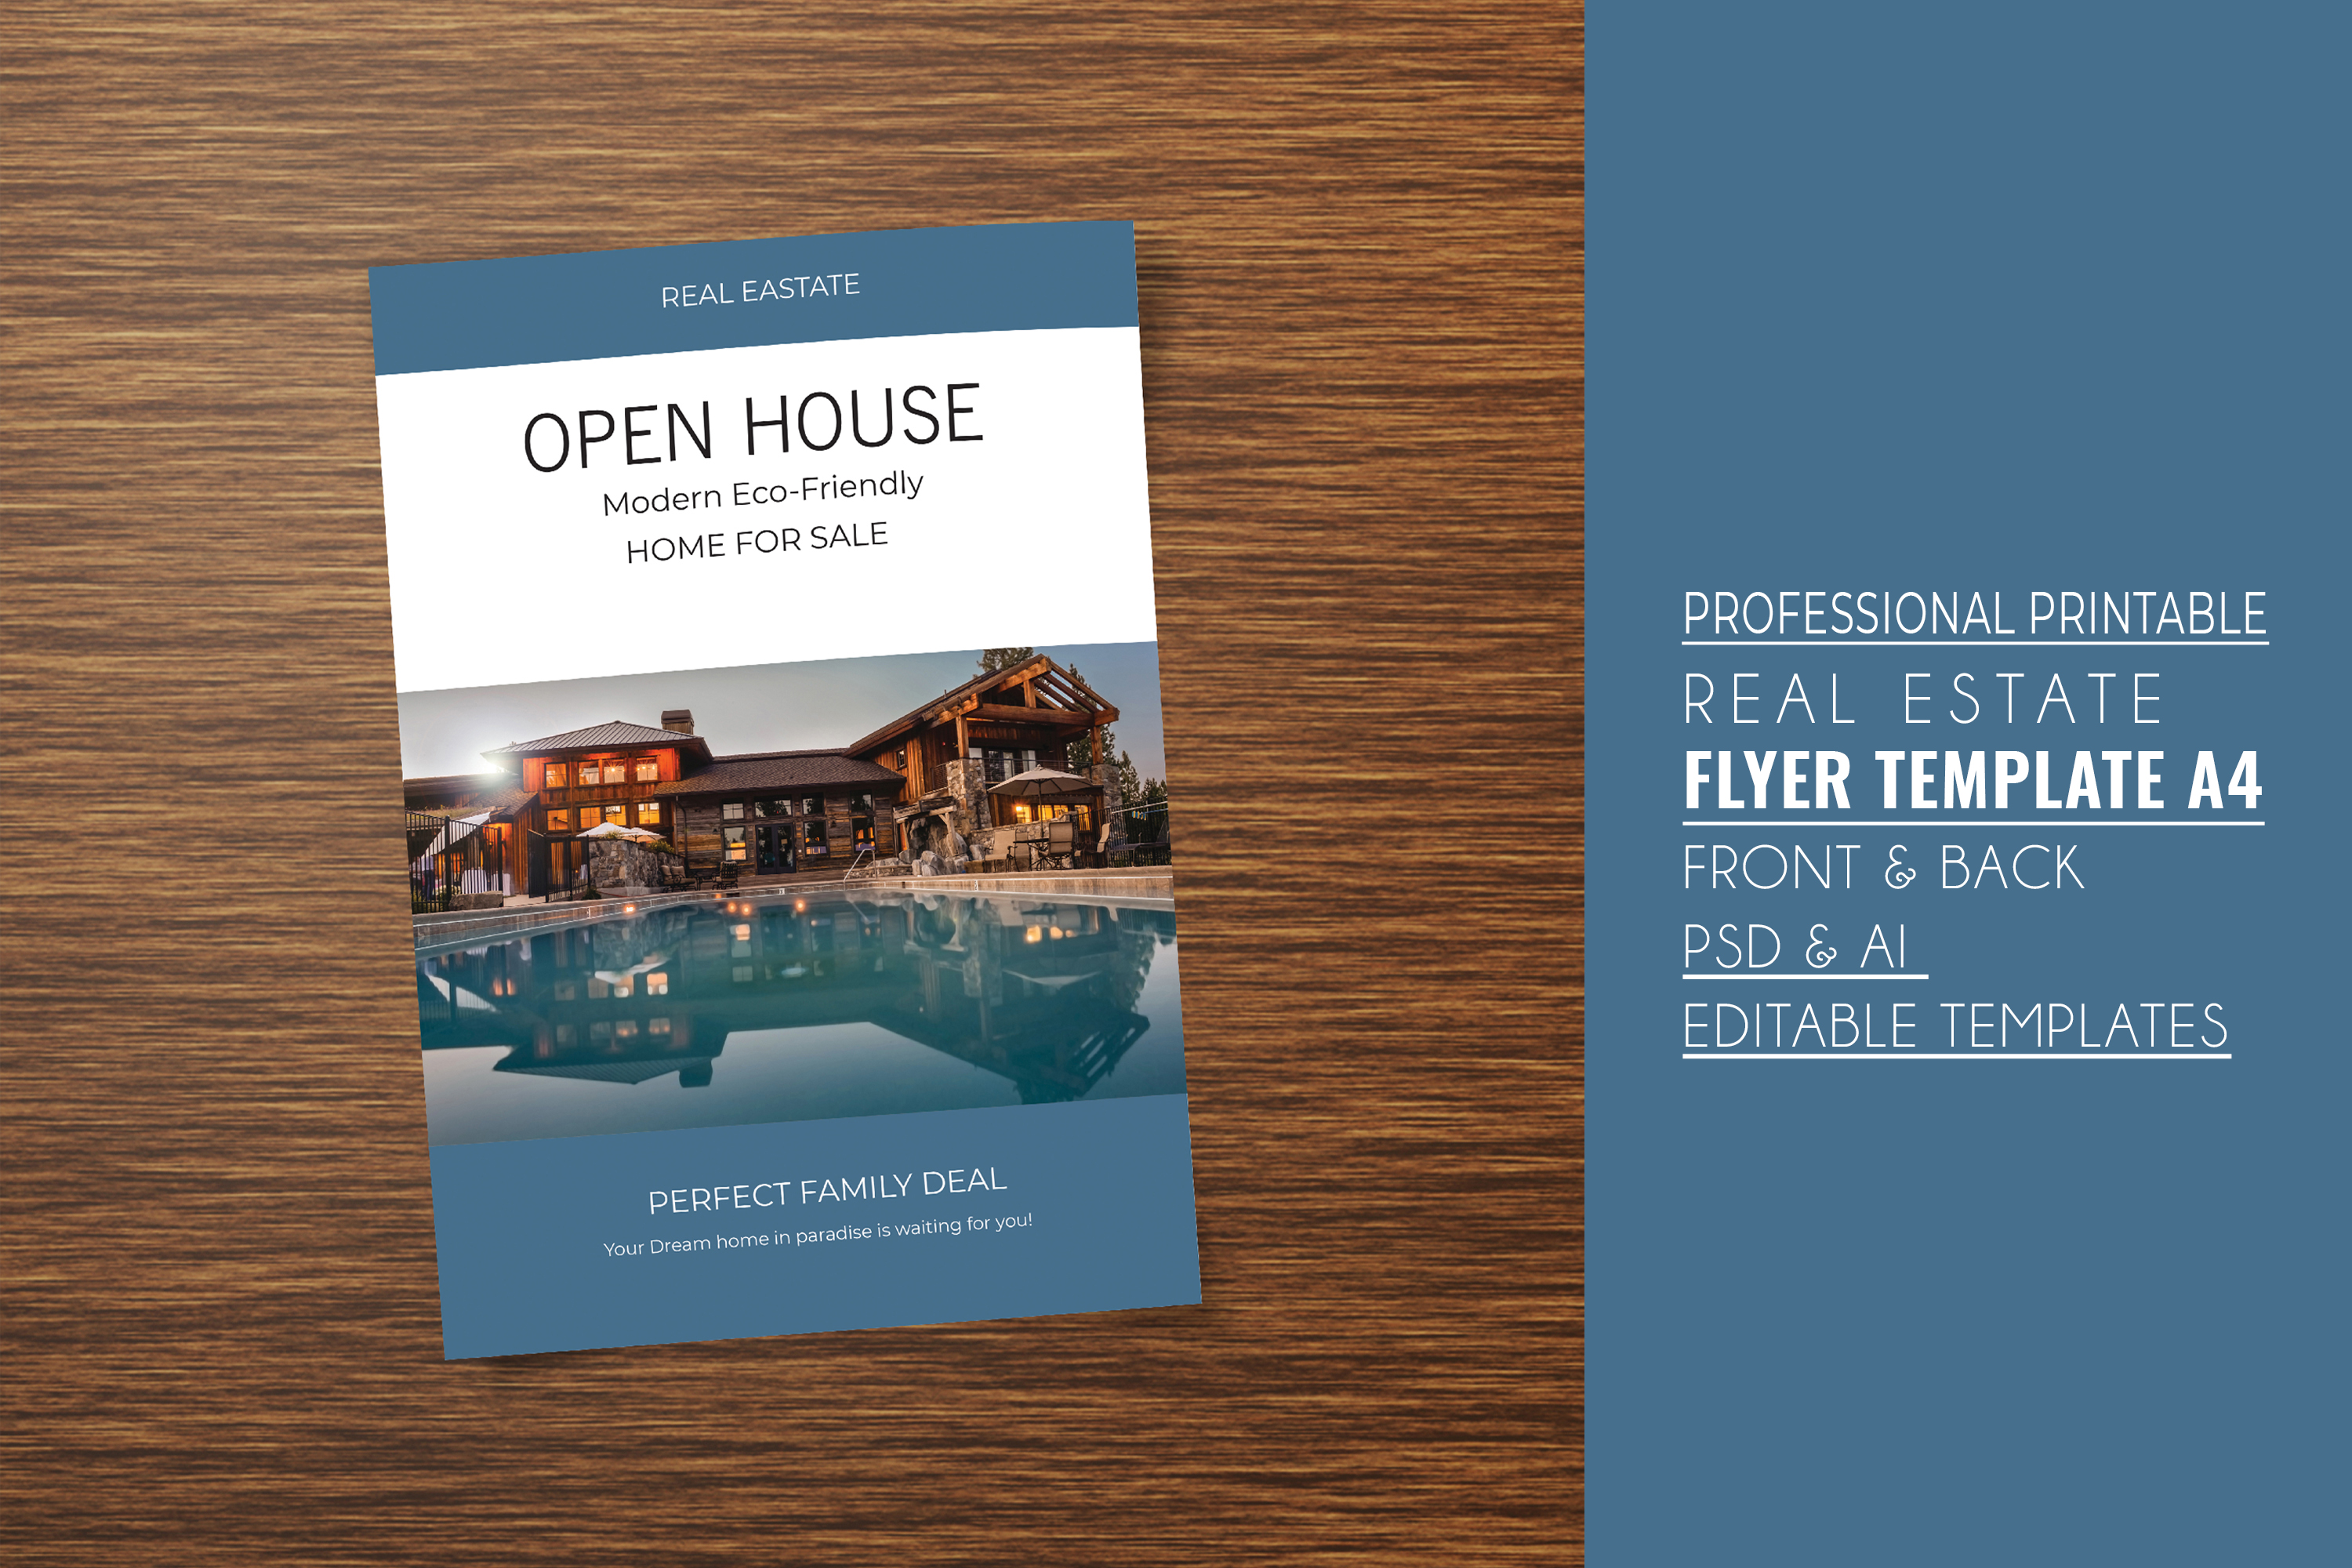 Professional Real Estate Flyer A4 - Printable Templates example image 5